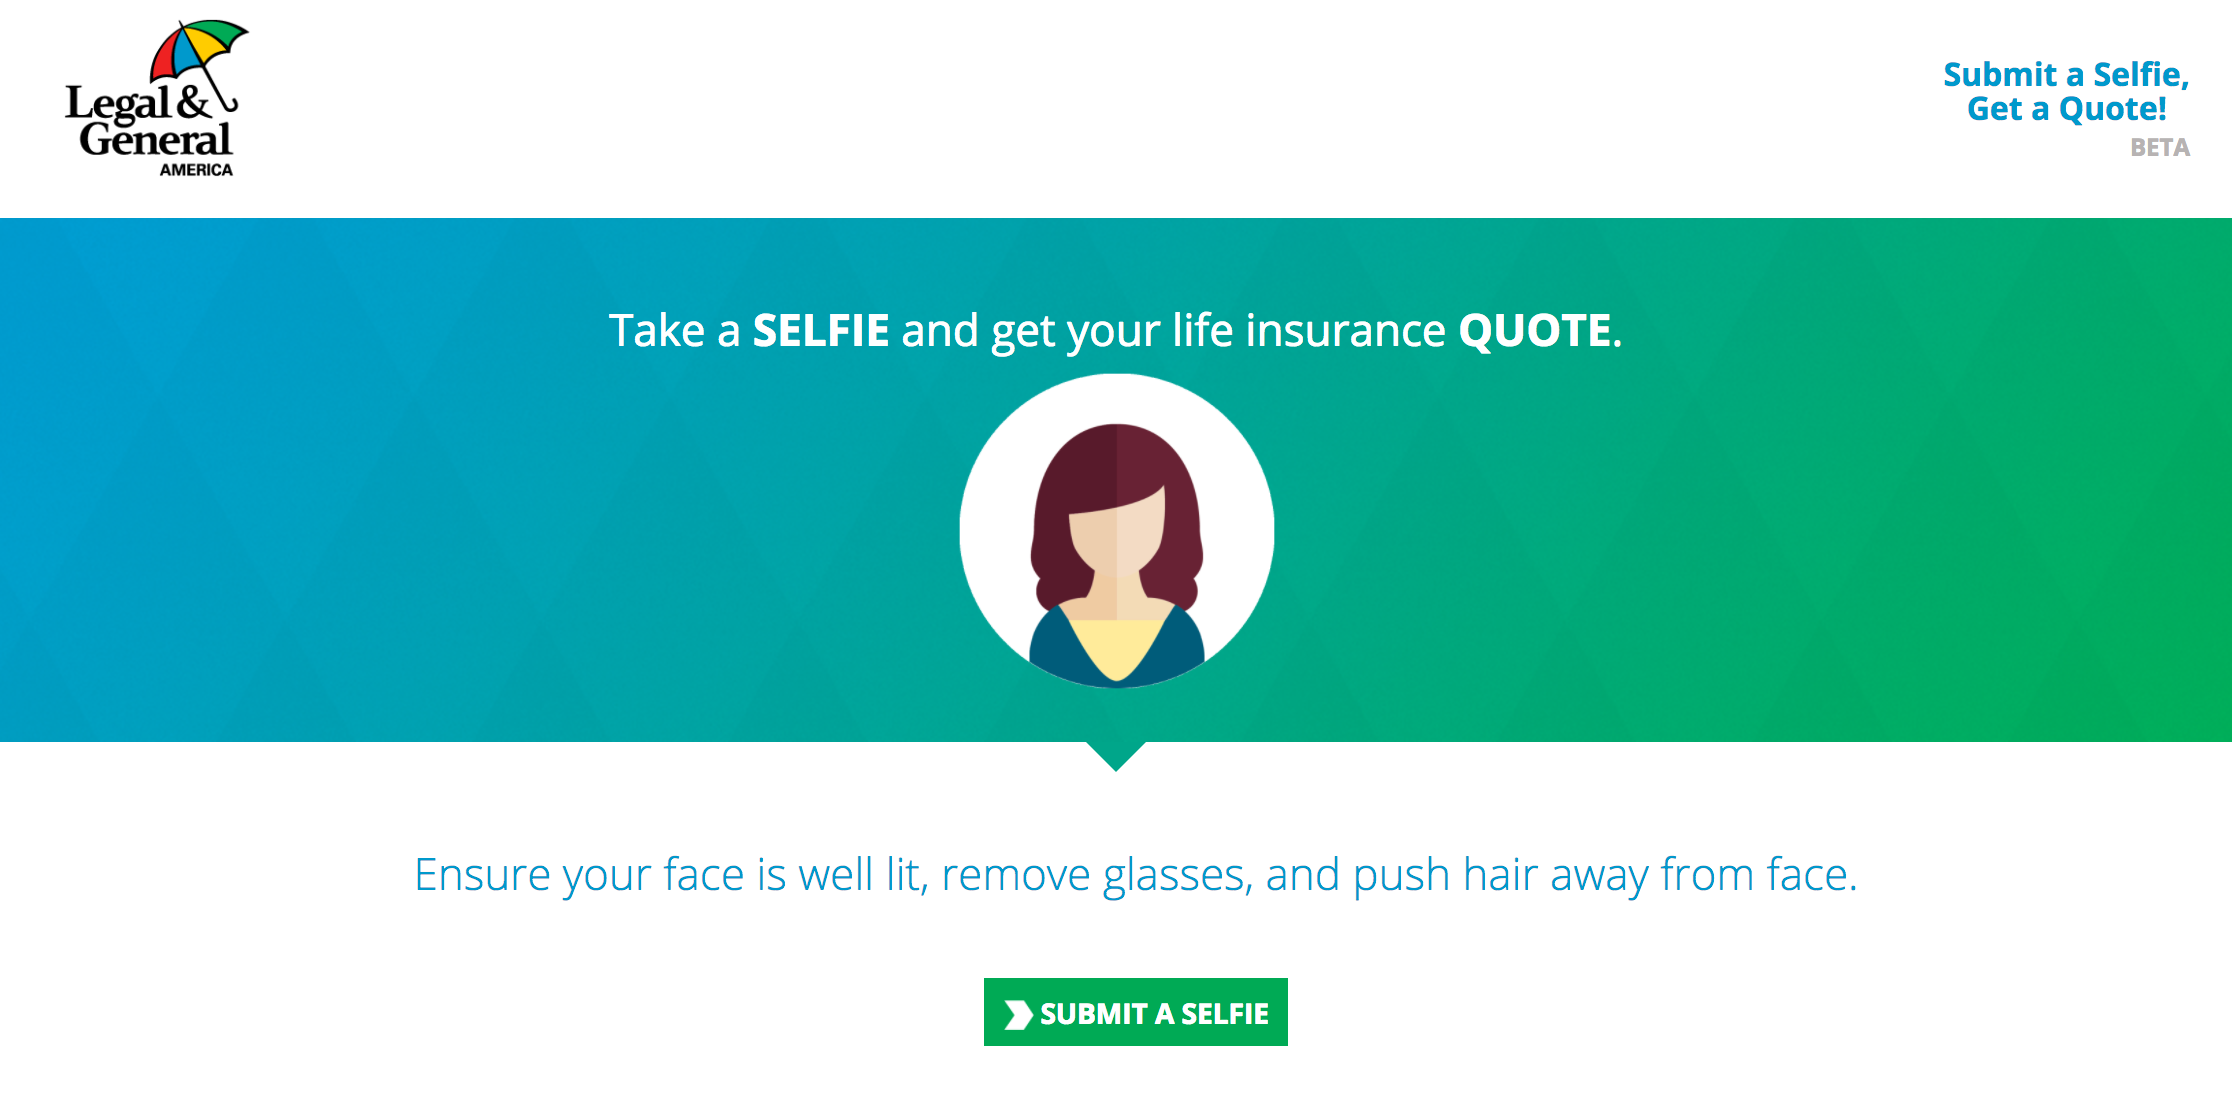 The General Insurance Quotes Take A Selfie & Get A Life Insurance Quote